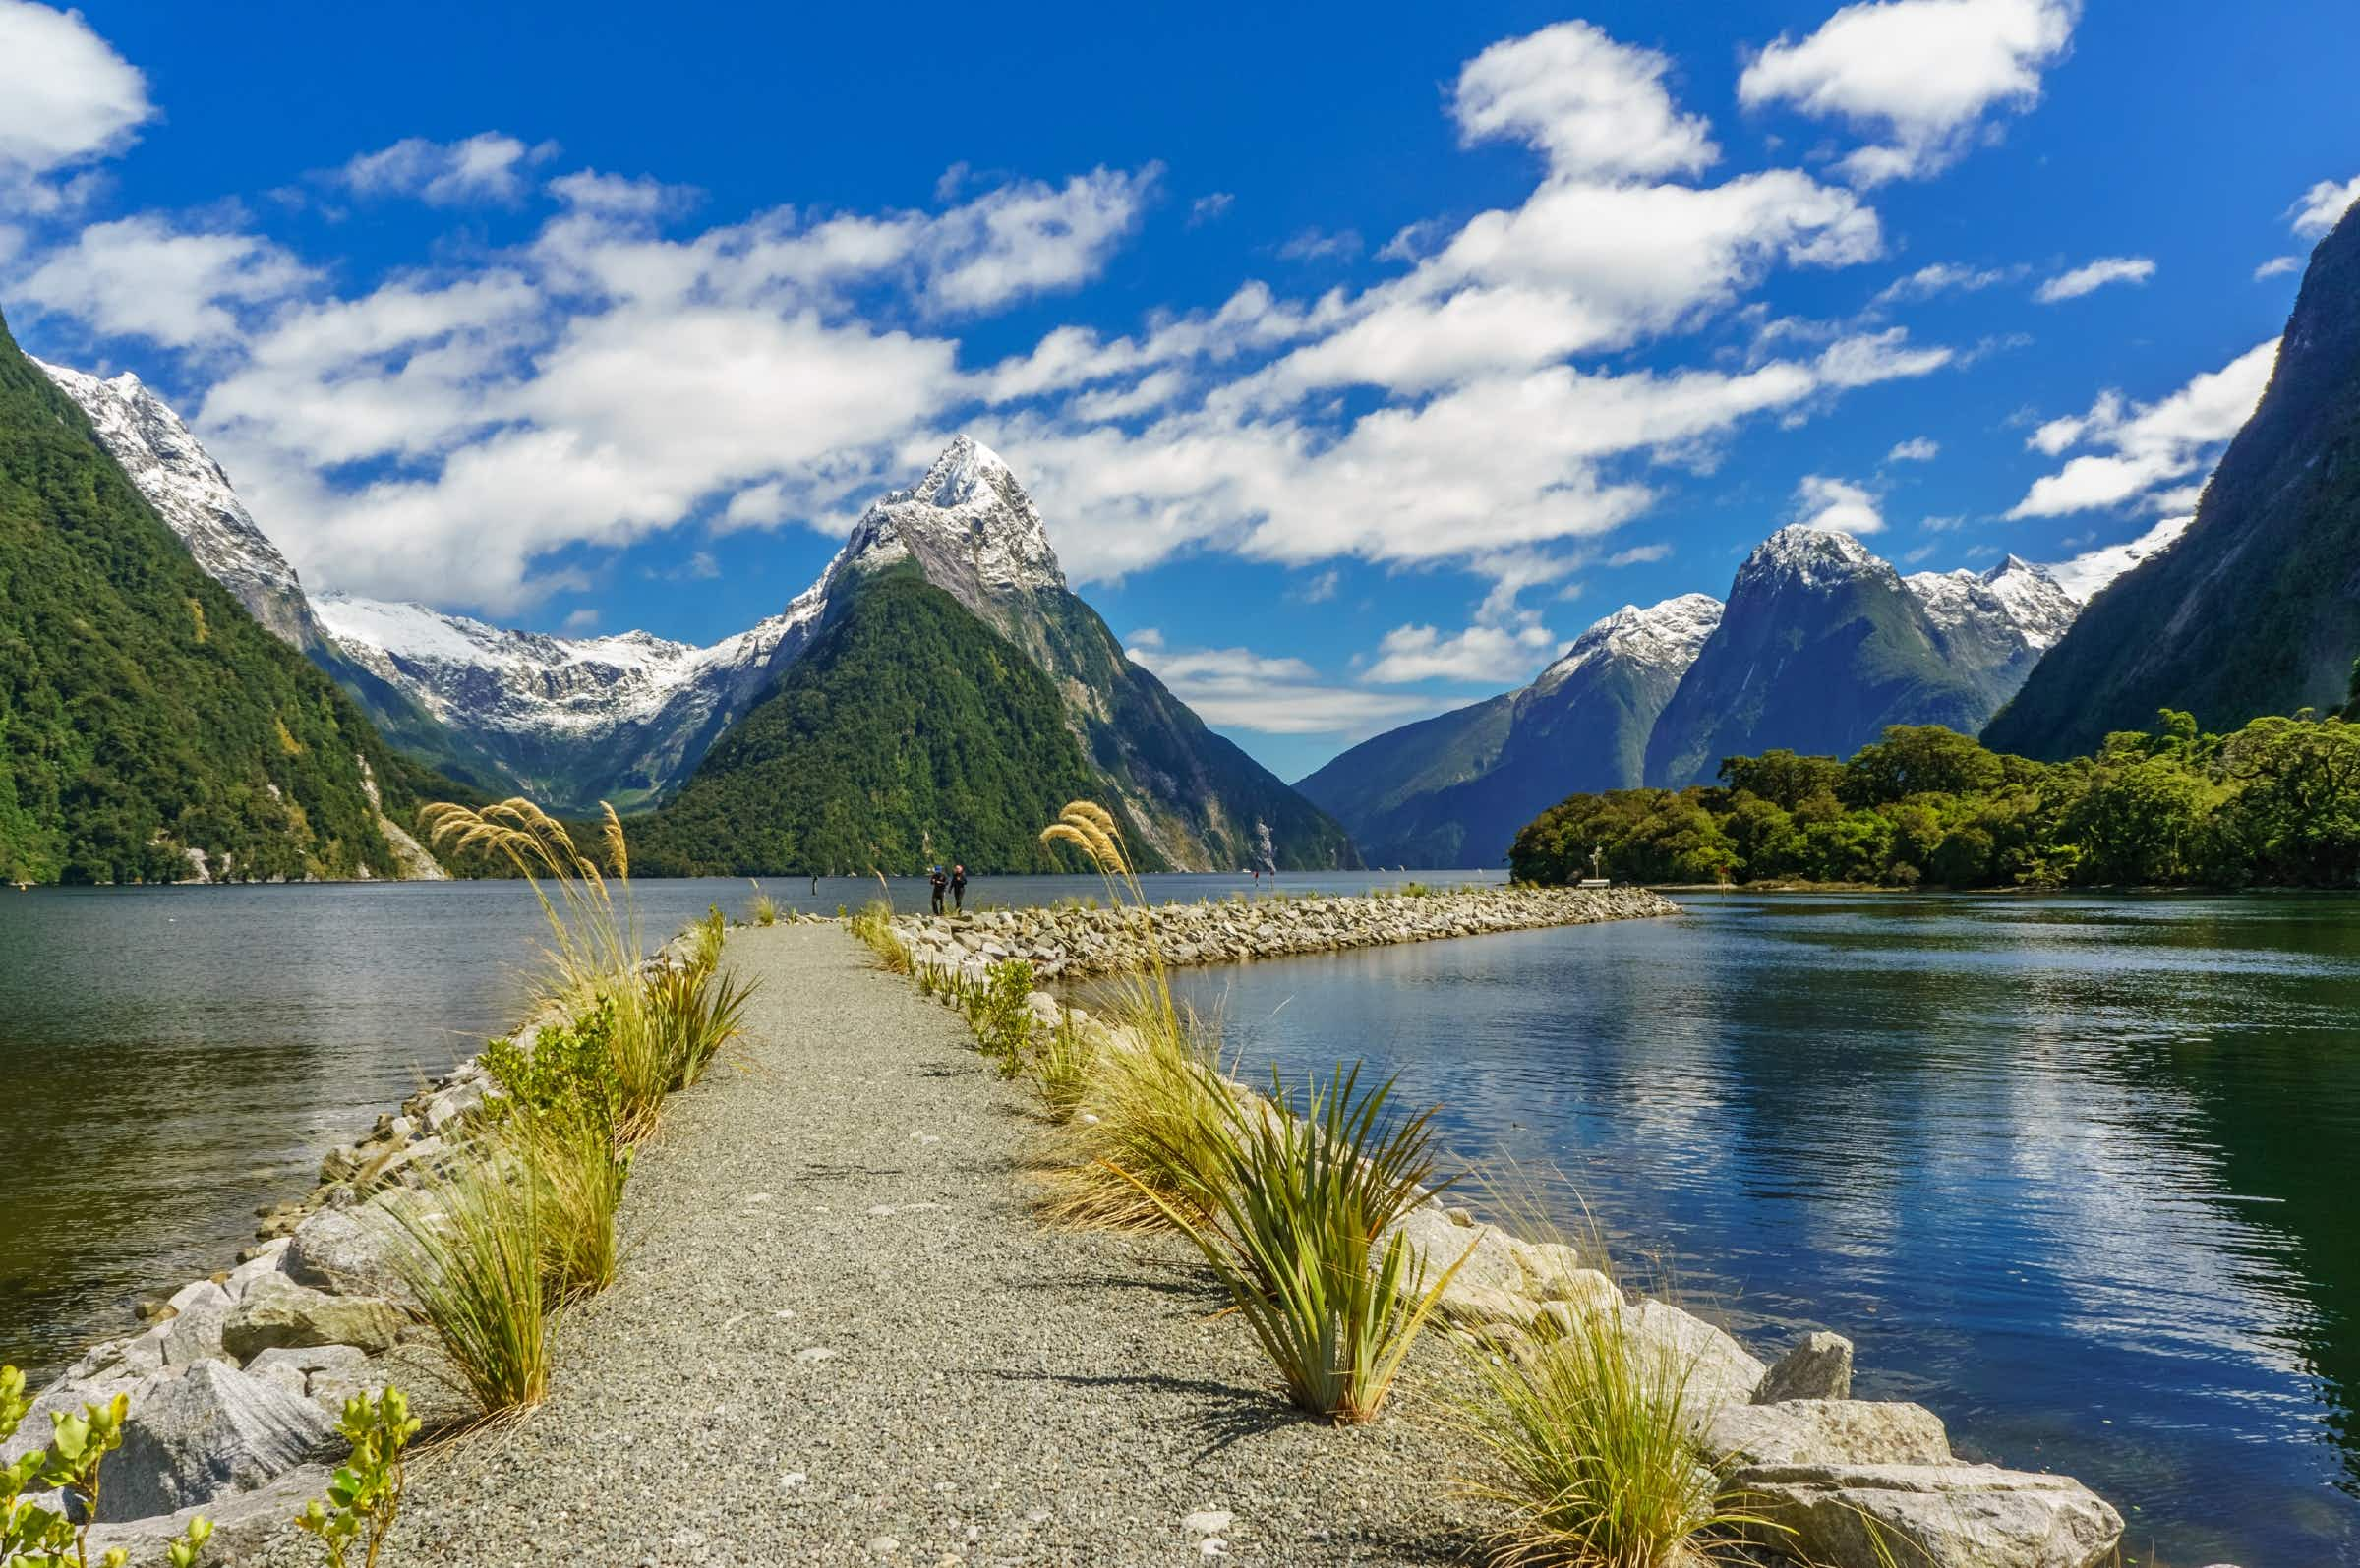 Now is the time to embark on New Zealand's Great Walks before next year's price hikes